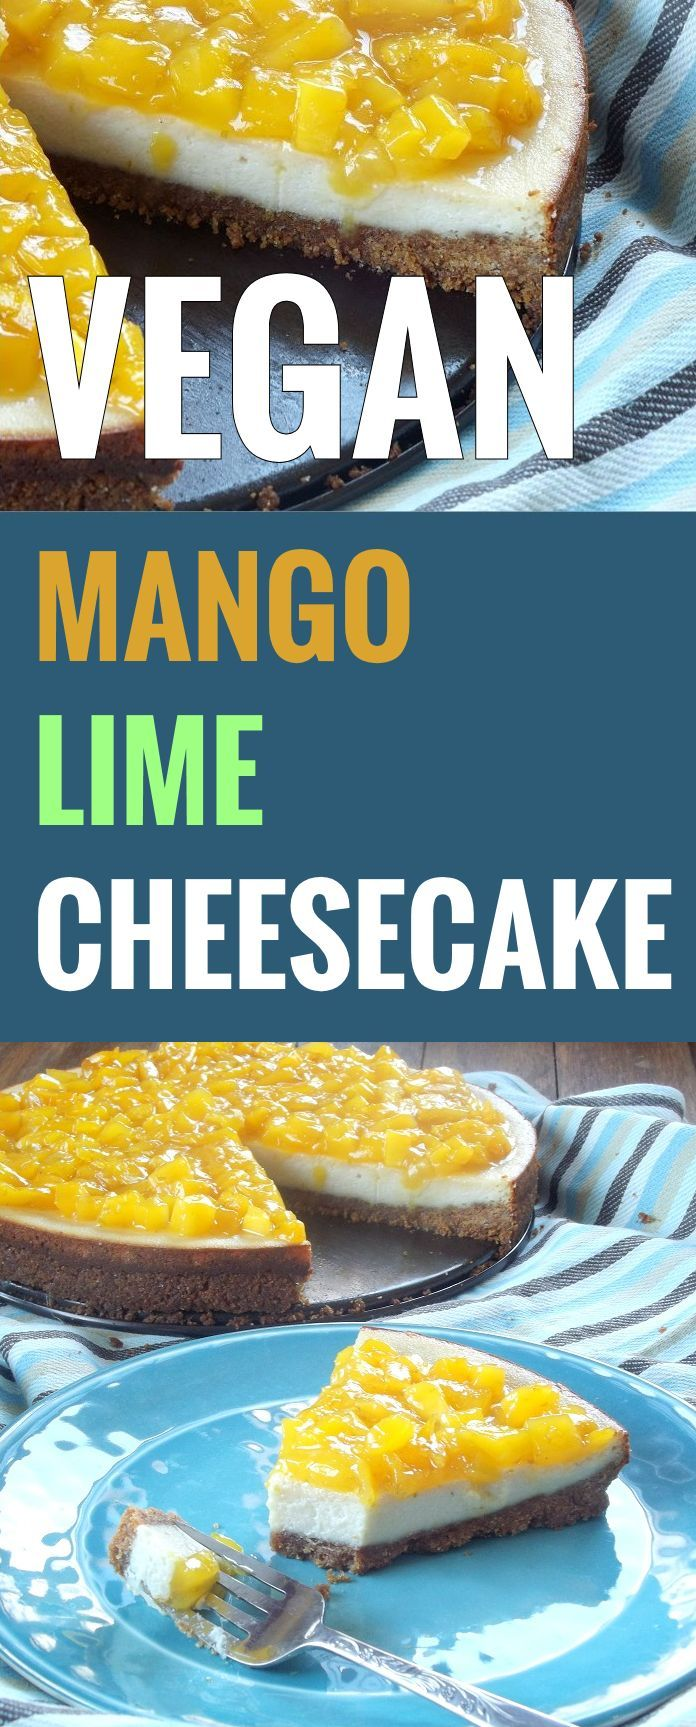 This creamy vegan cheesecake is made from silken tofu and cashews, and covered with a sweet and tangy mango lime topping.